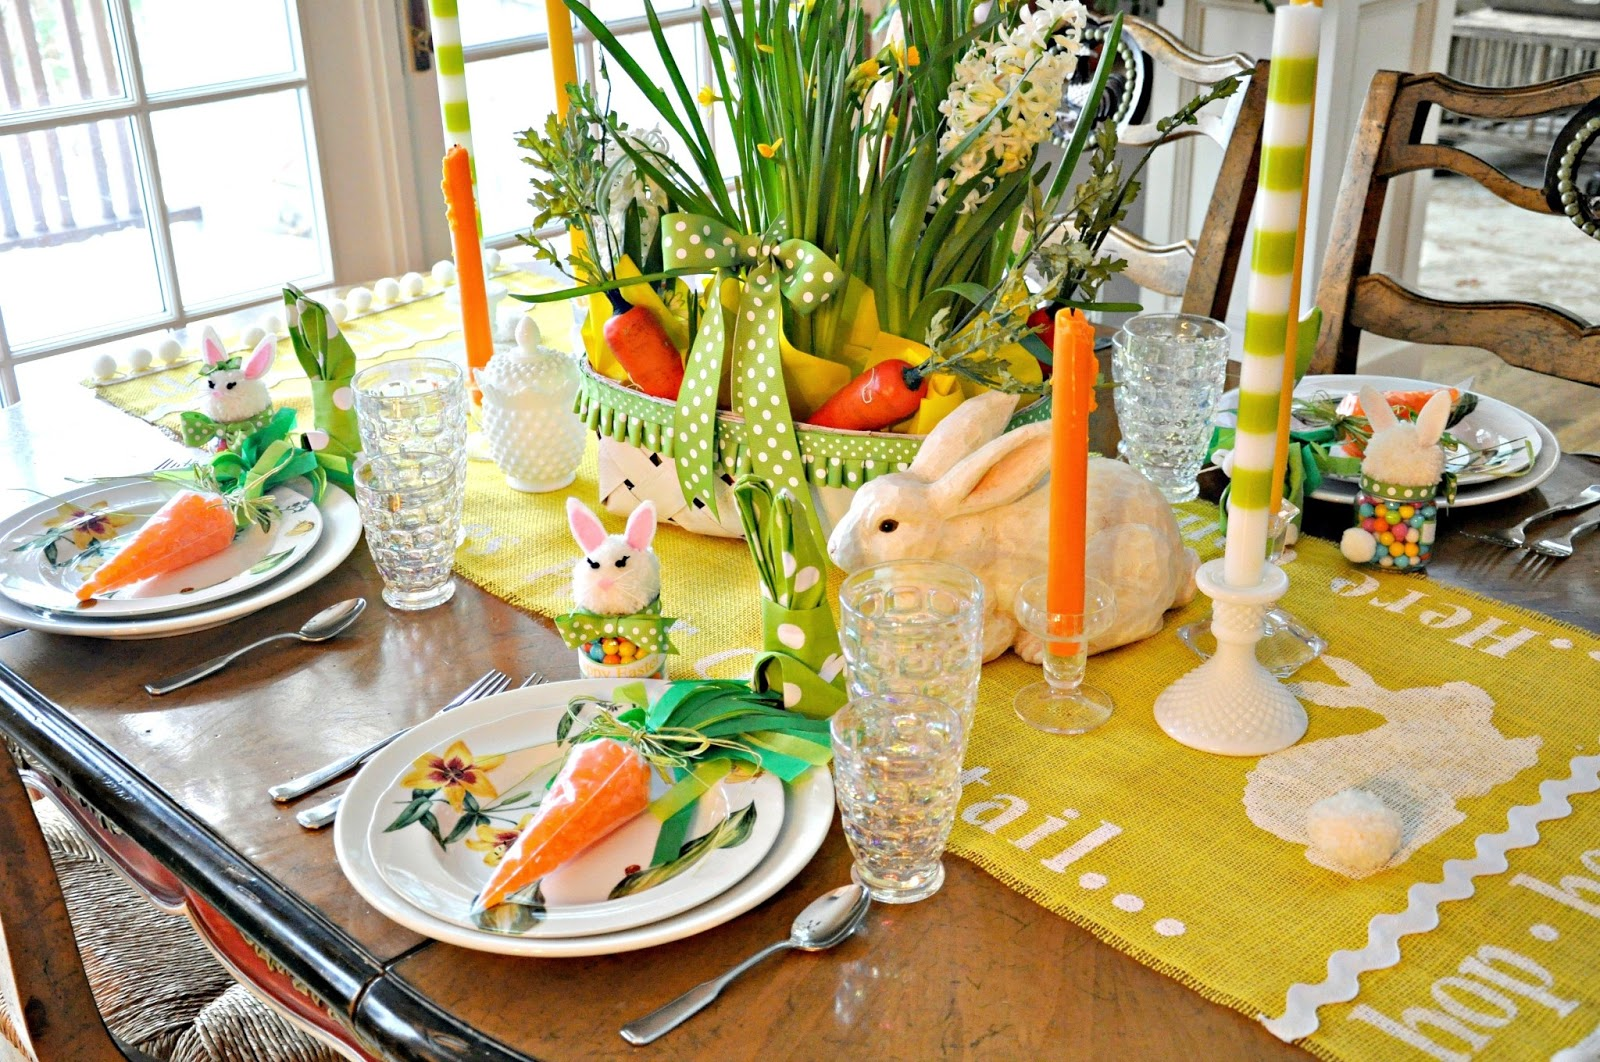 Best Serendipity Refined Blog Easter Table Setting This Month